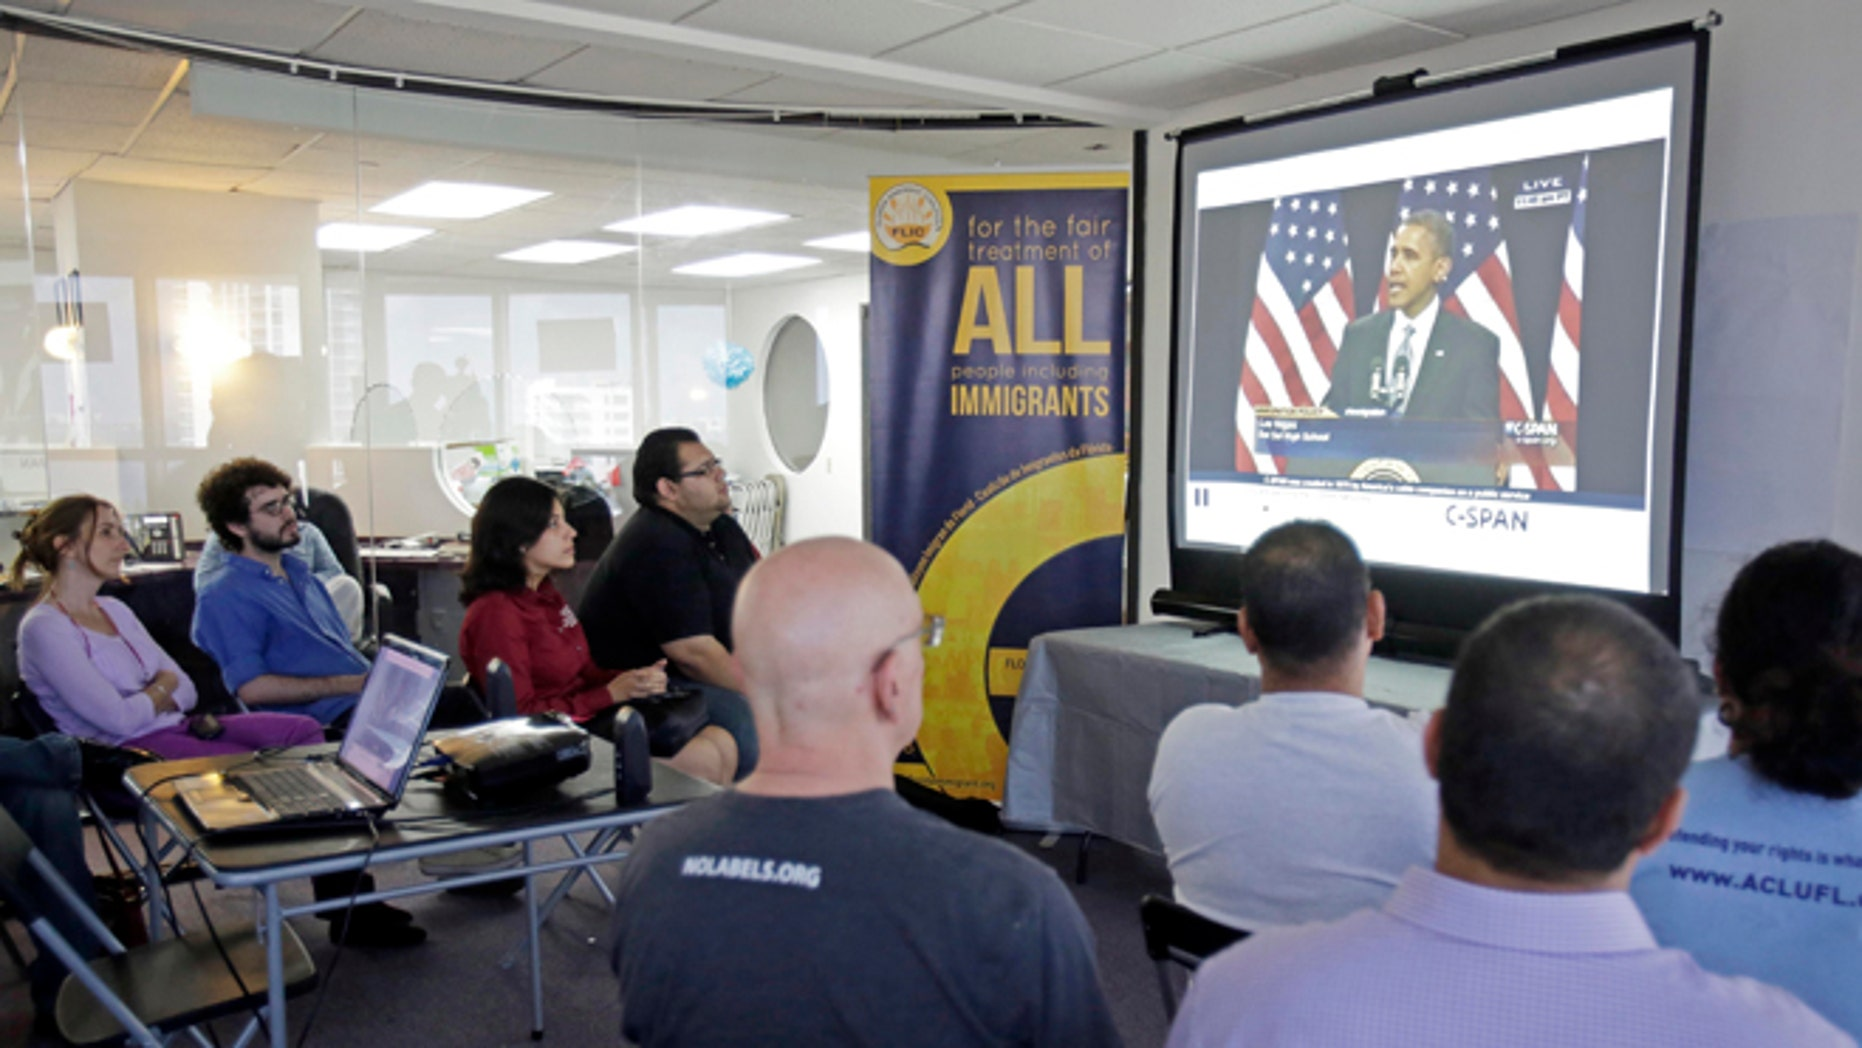 Jan. 29, 2013: Illegal immigrants and immigration activists watch a live image of President Barack Obama speaking about immigration reform as they sit together in Miami.